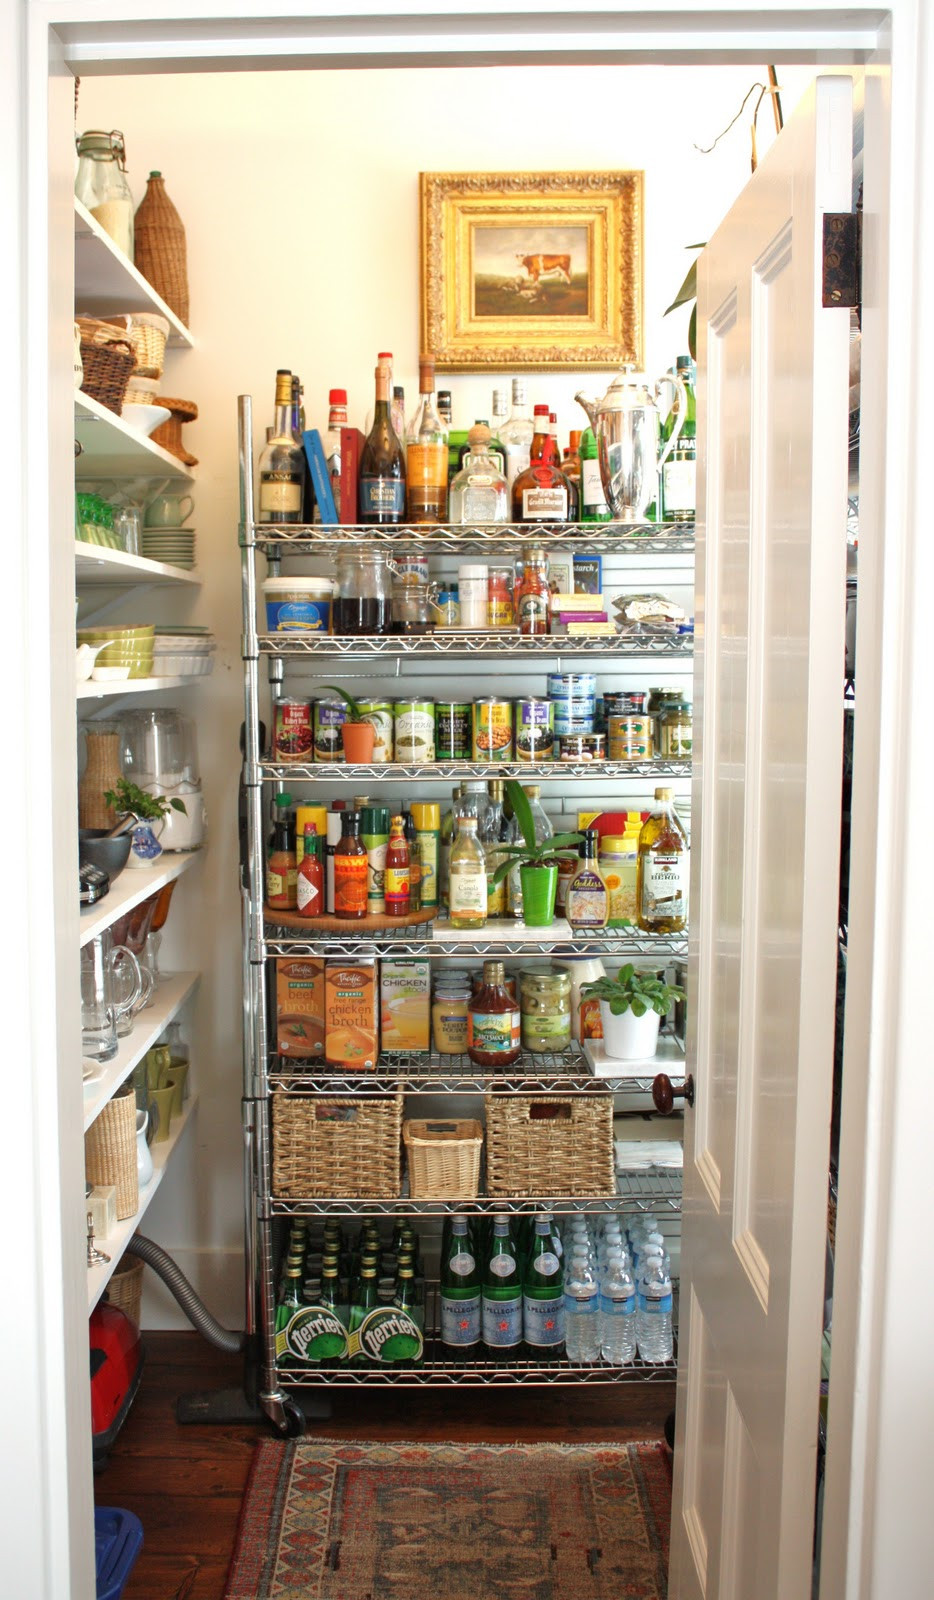 Best ideas about Kitchen Pantry Shelving . Save or Pin for the love of a house the pantry Now.